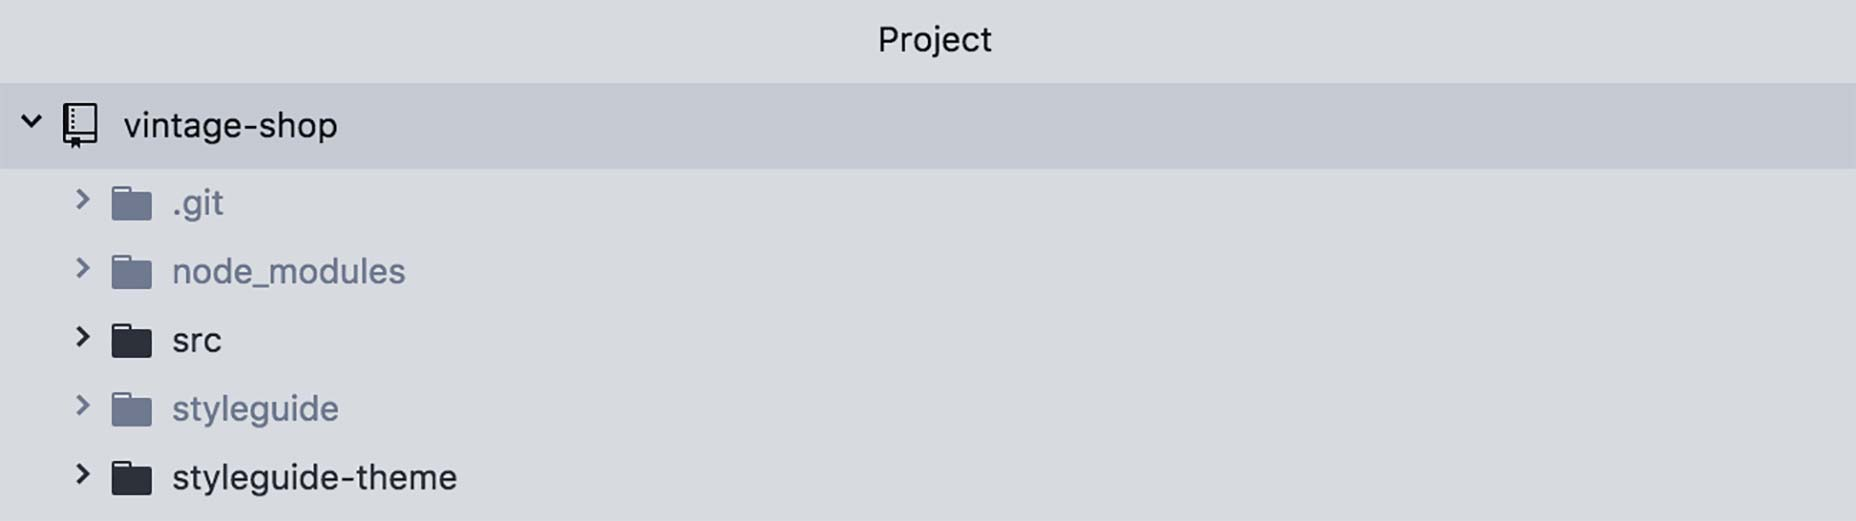 7-project-contents